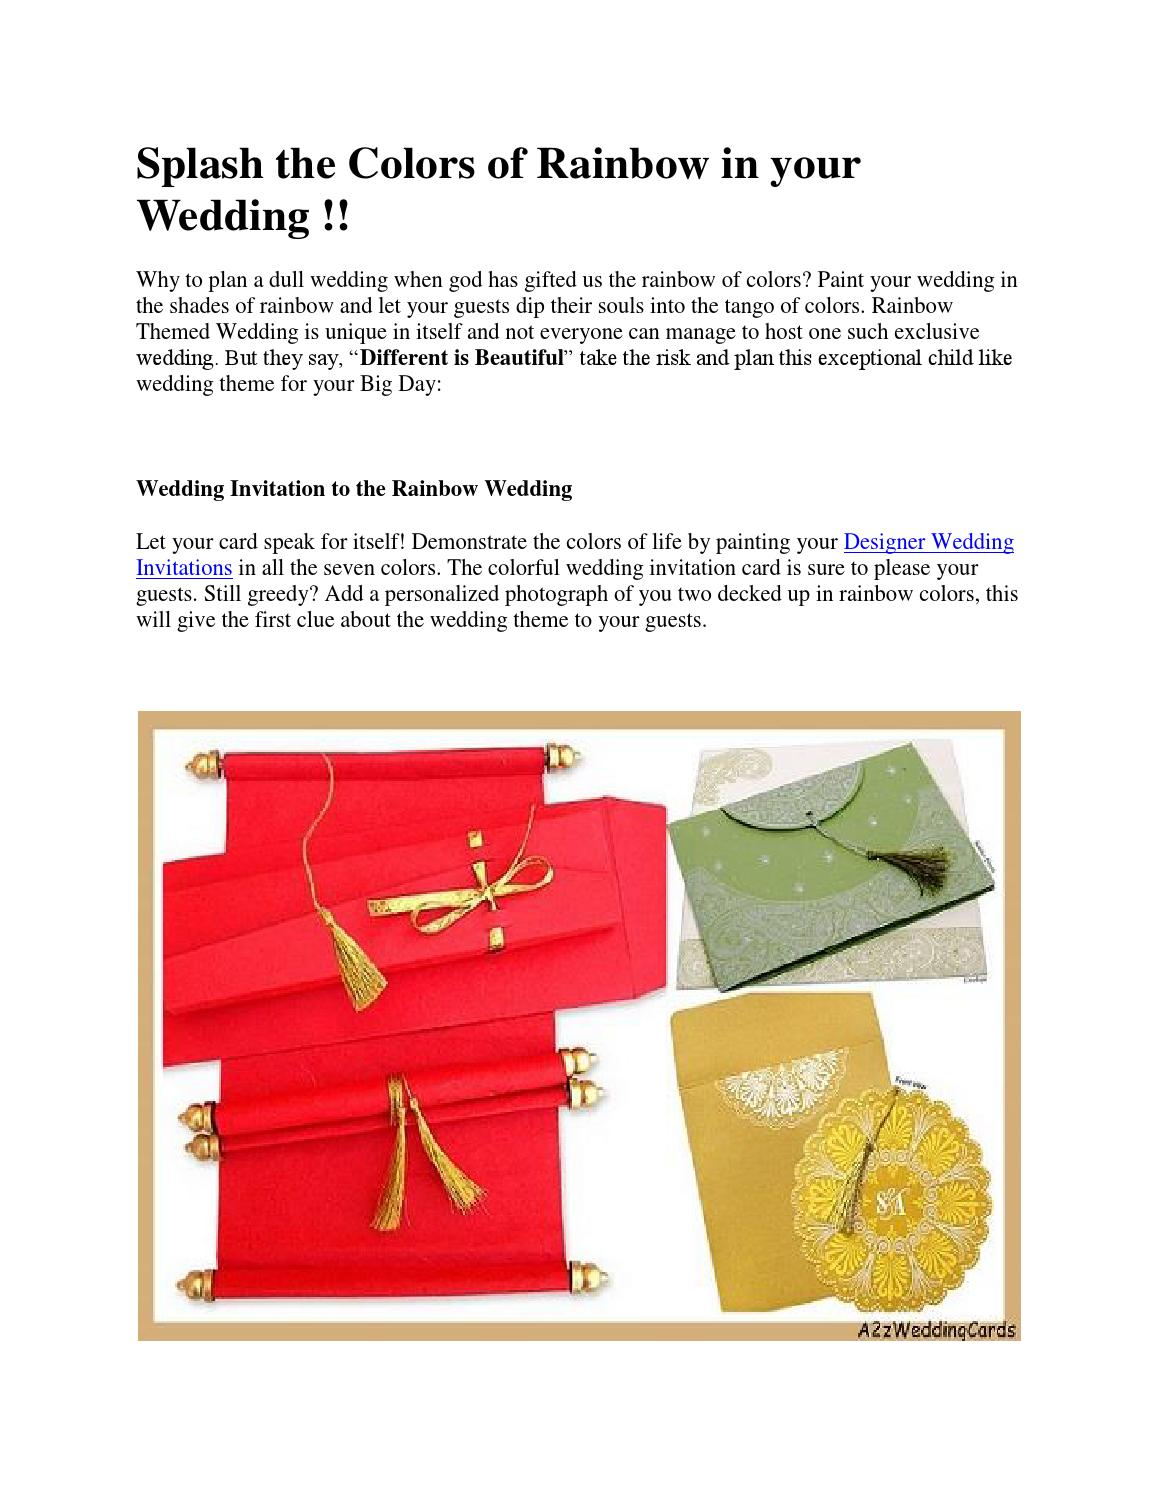 Splash the colors of rainbow in your Wedding by A2zWeddingCards - issuu